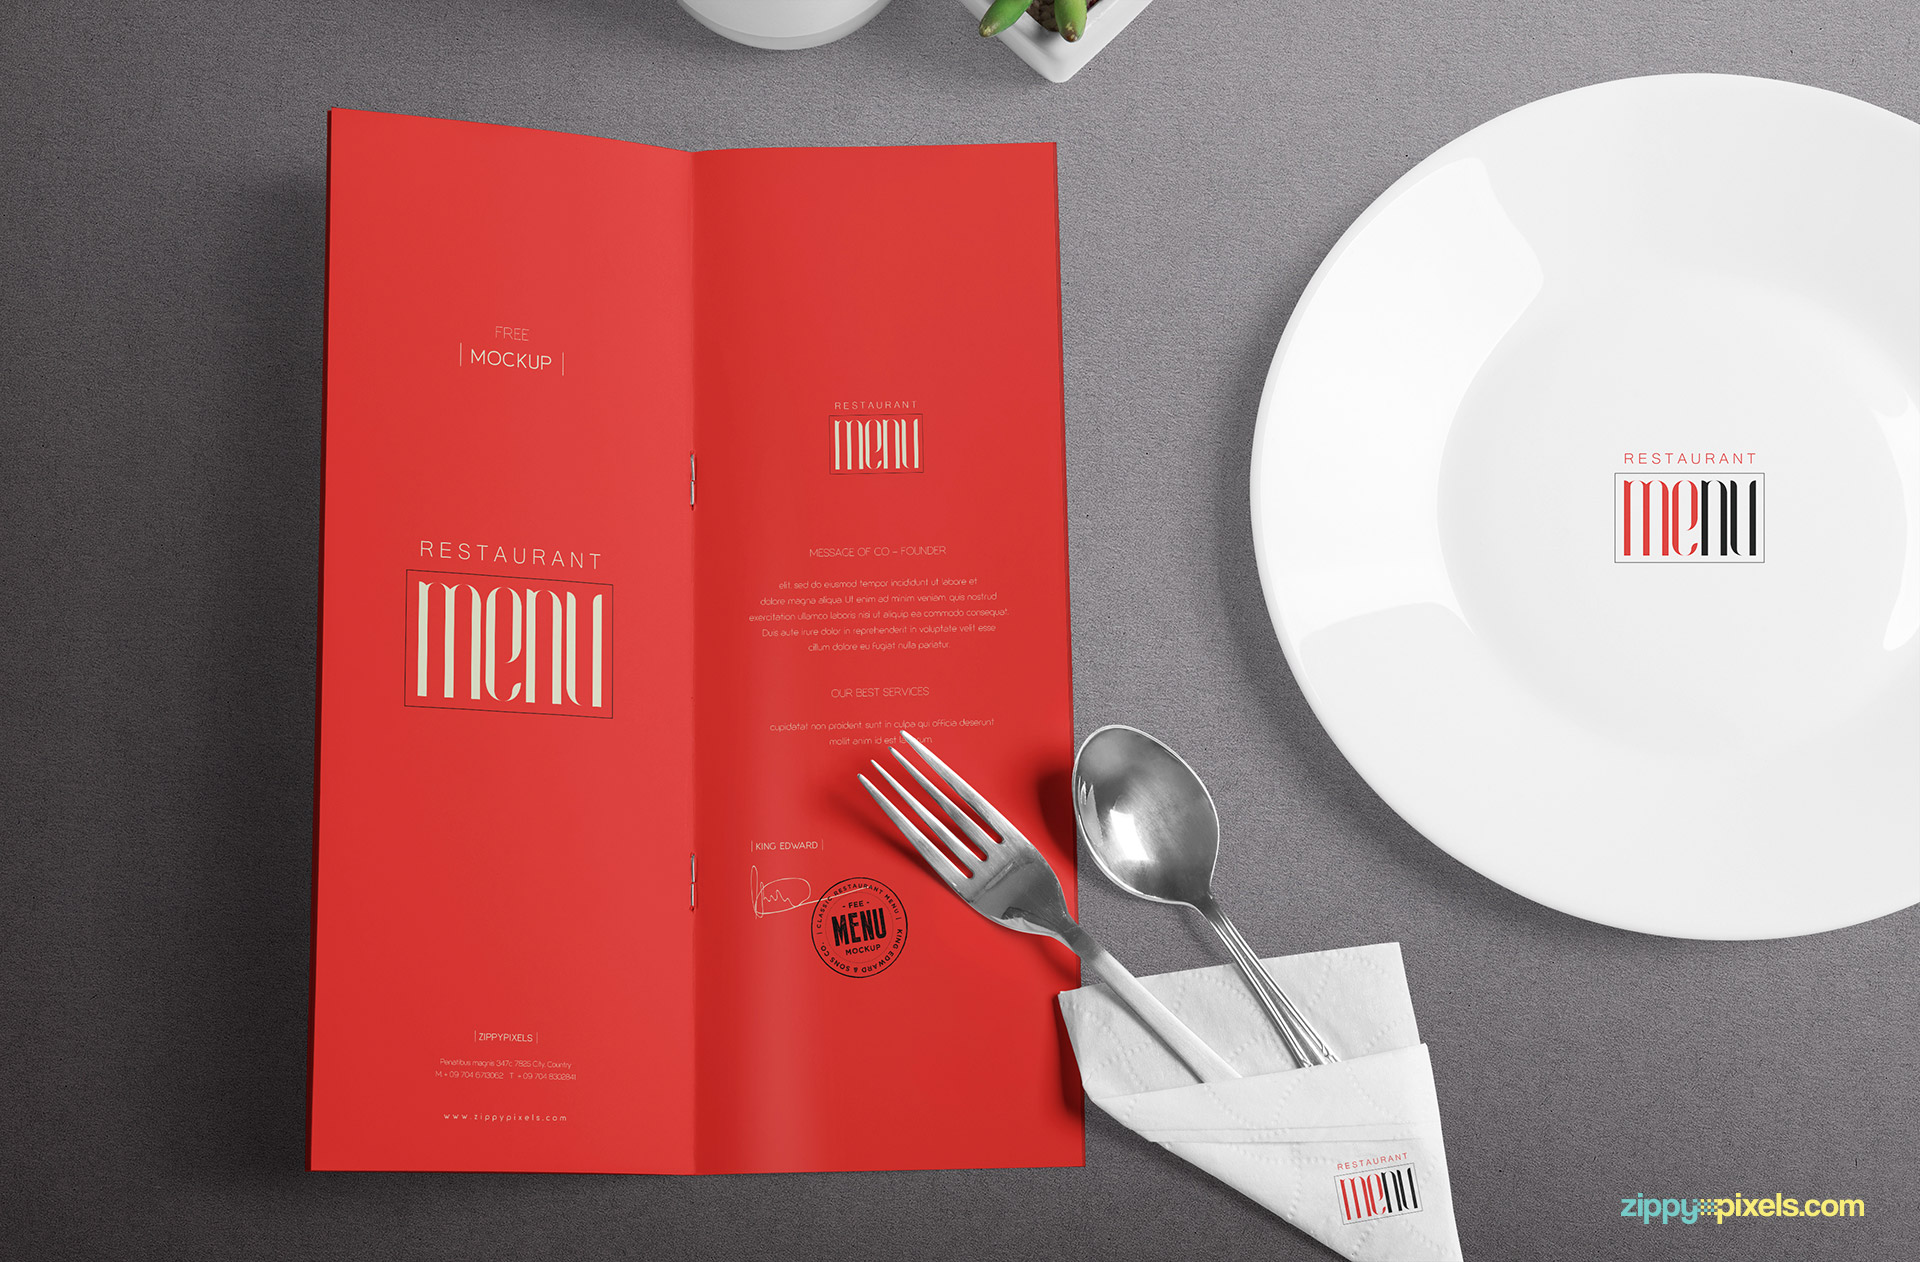 Free customizable menu mockup scene.